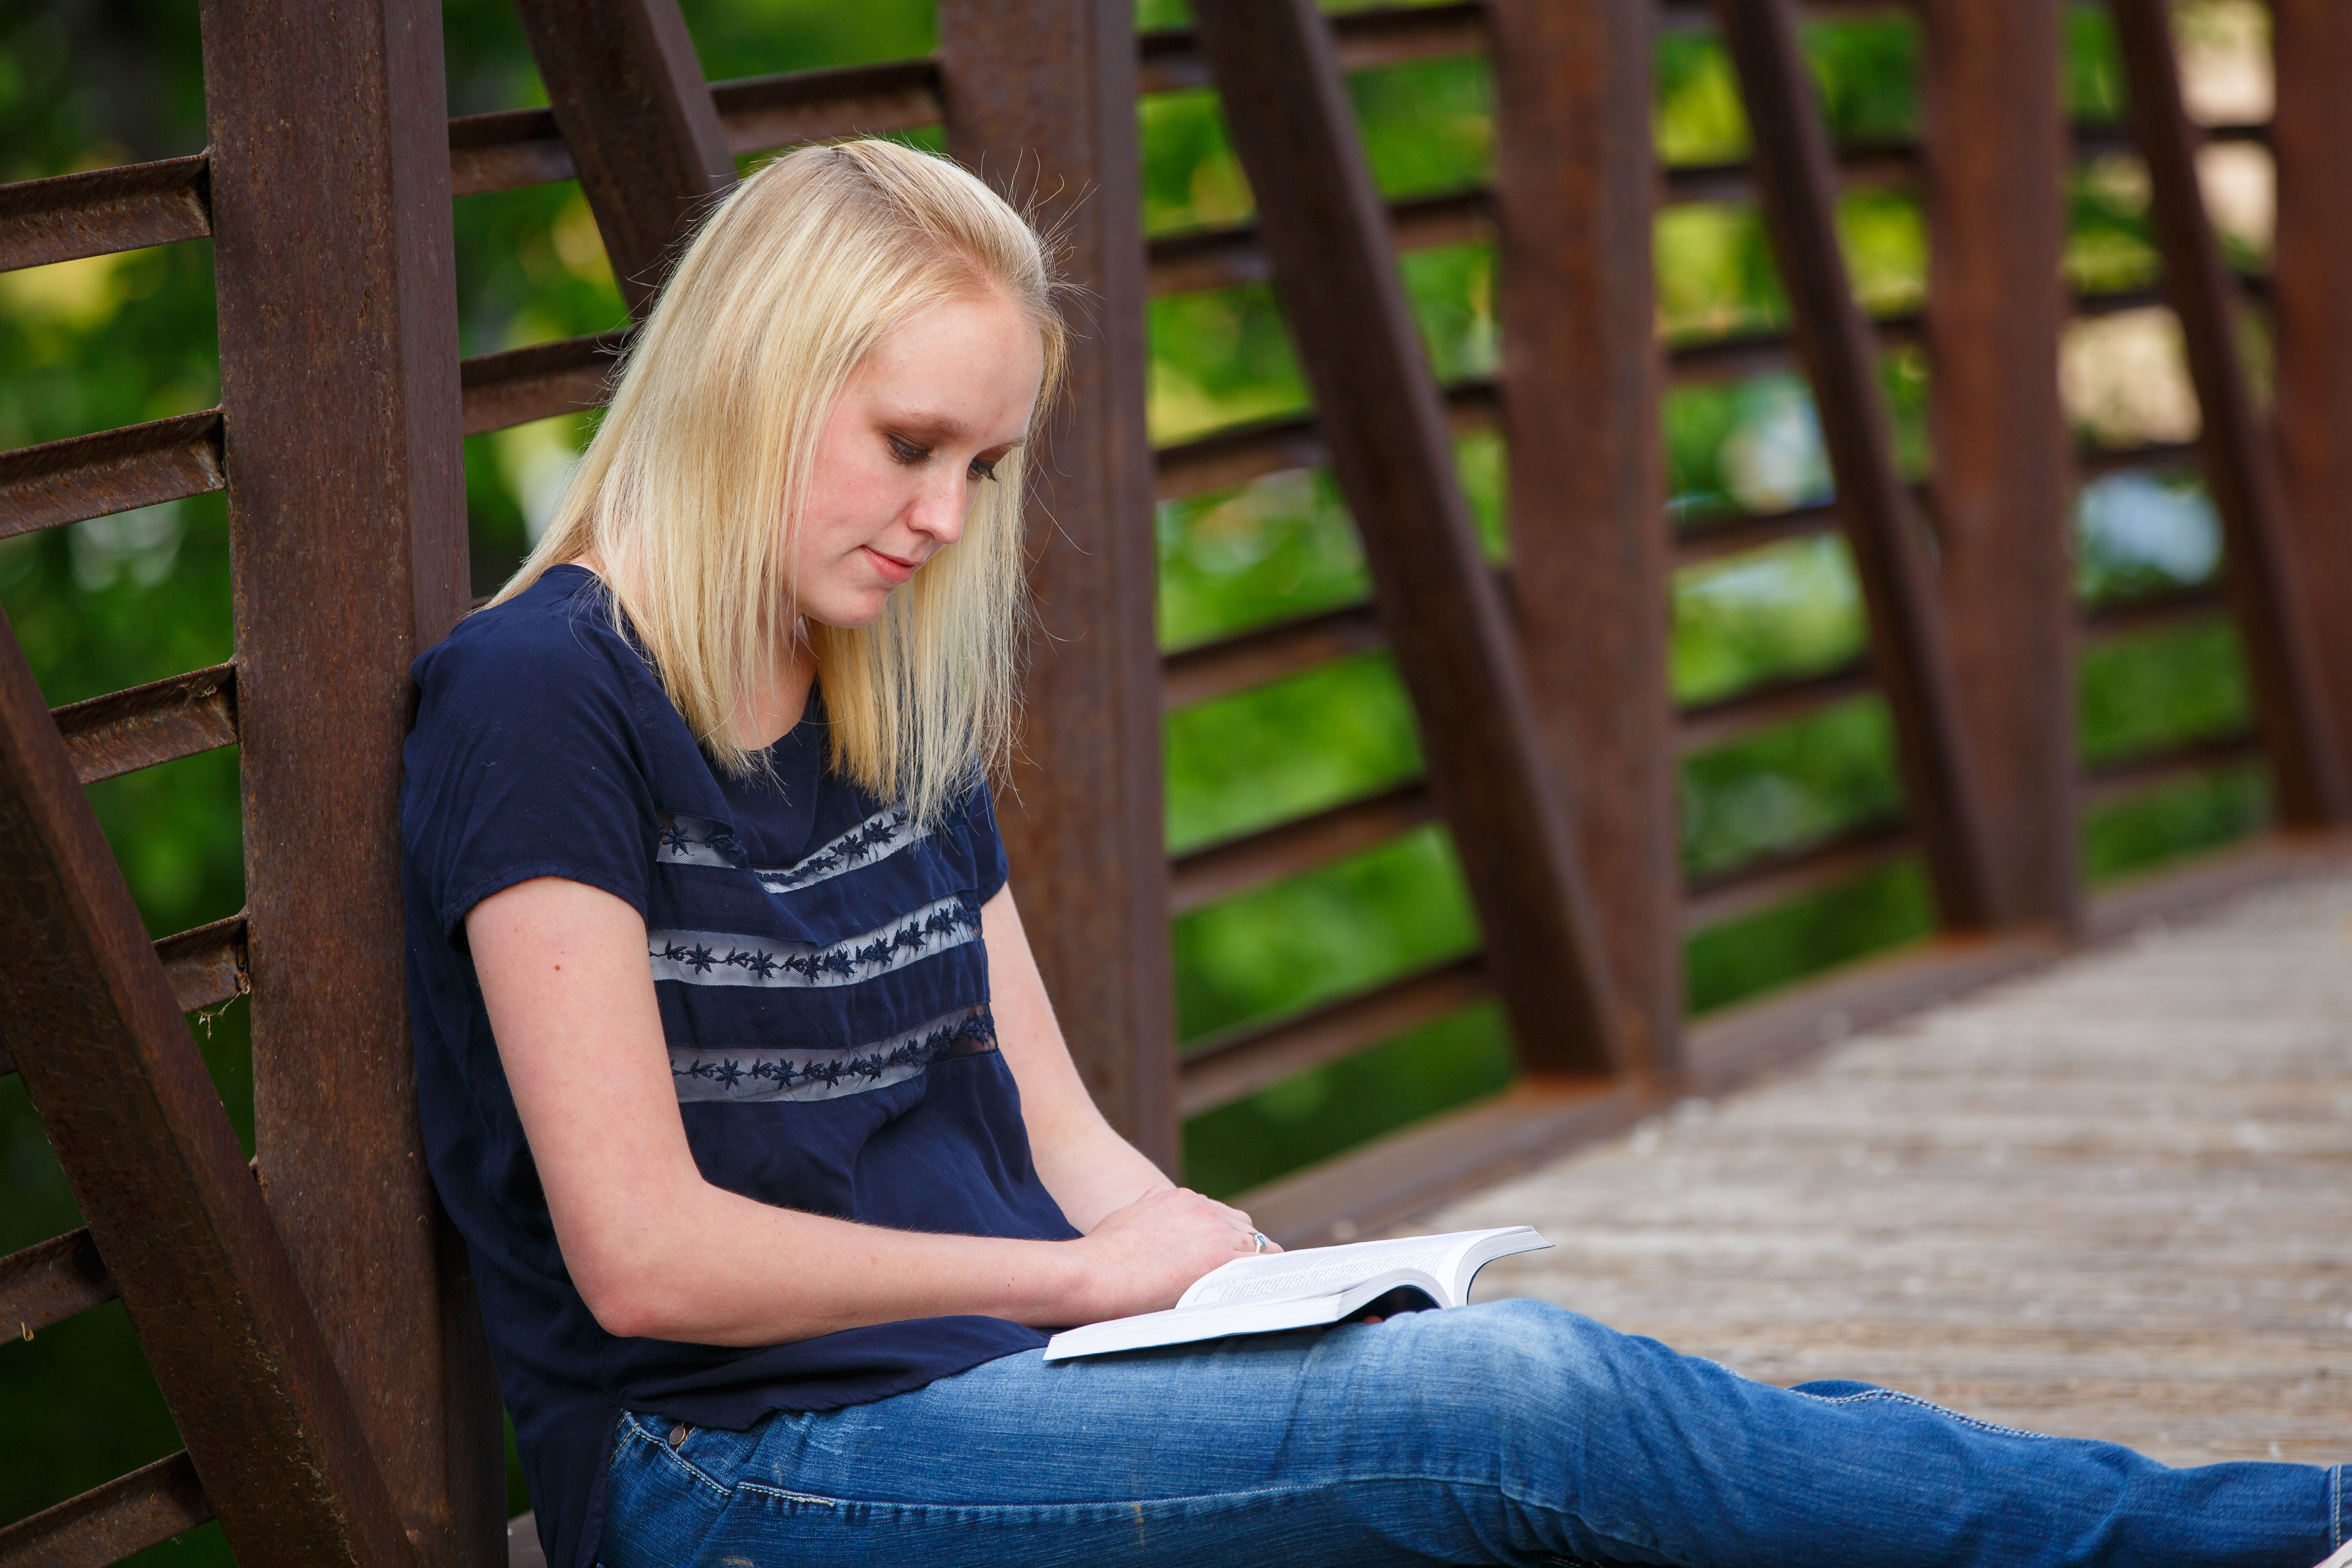 A young woman reading the Book of Mormon.